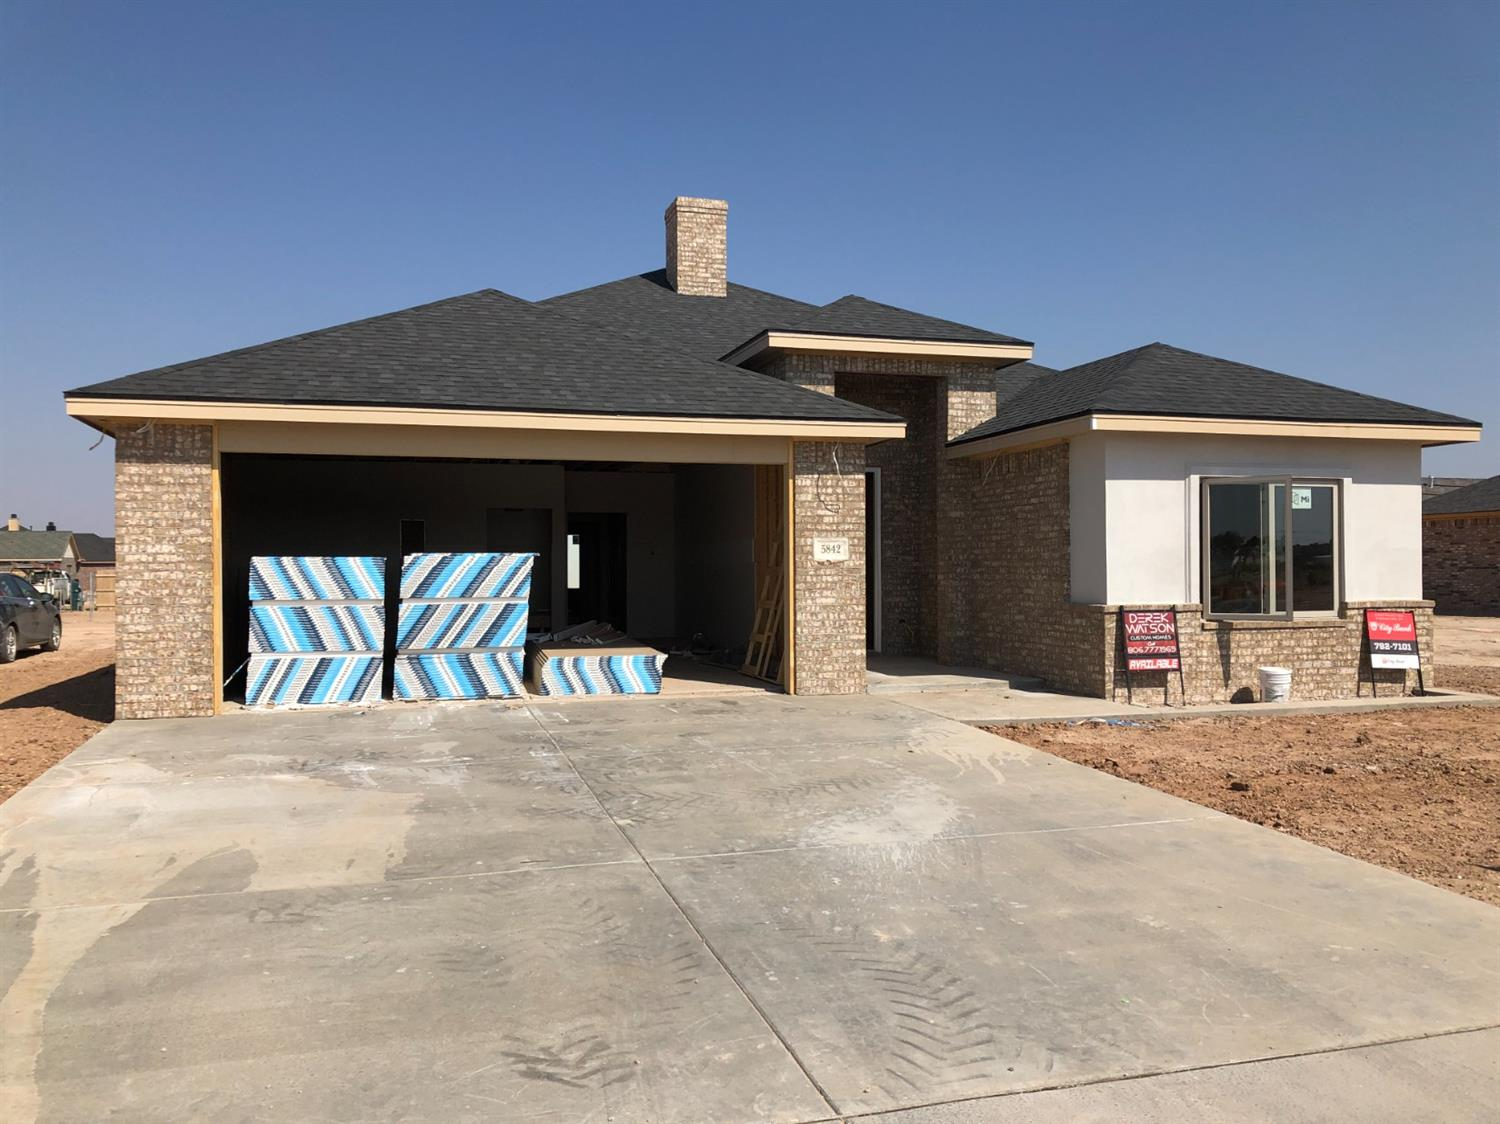 Fabulous new construction home in Frenship ISD built by Derek Watson Custom Homes!  This custom built 3 bedroom, 3 bathroom home will be ready in January 2021. The beautiful kitchen has exquisite custom built cabinetry, stainless steel appliances, a large island with breakfast bar, granite countertops and a wine bar!  This home has an open concept floor plan with the kitchen opening up to a large living area with a beautiful fireplace. Vinyl plank flooring covers the living, dining, kitchen and laundry rooms with carpet in the bedrooms. The exterior has a fenced-in backyard, covered patio area, automatic sprinklers around the property and much more!  Call us TODAY for more information on this NEW CONSTRUCTION home!!